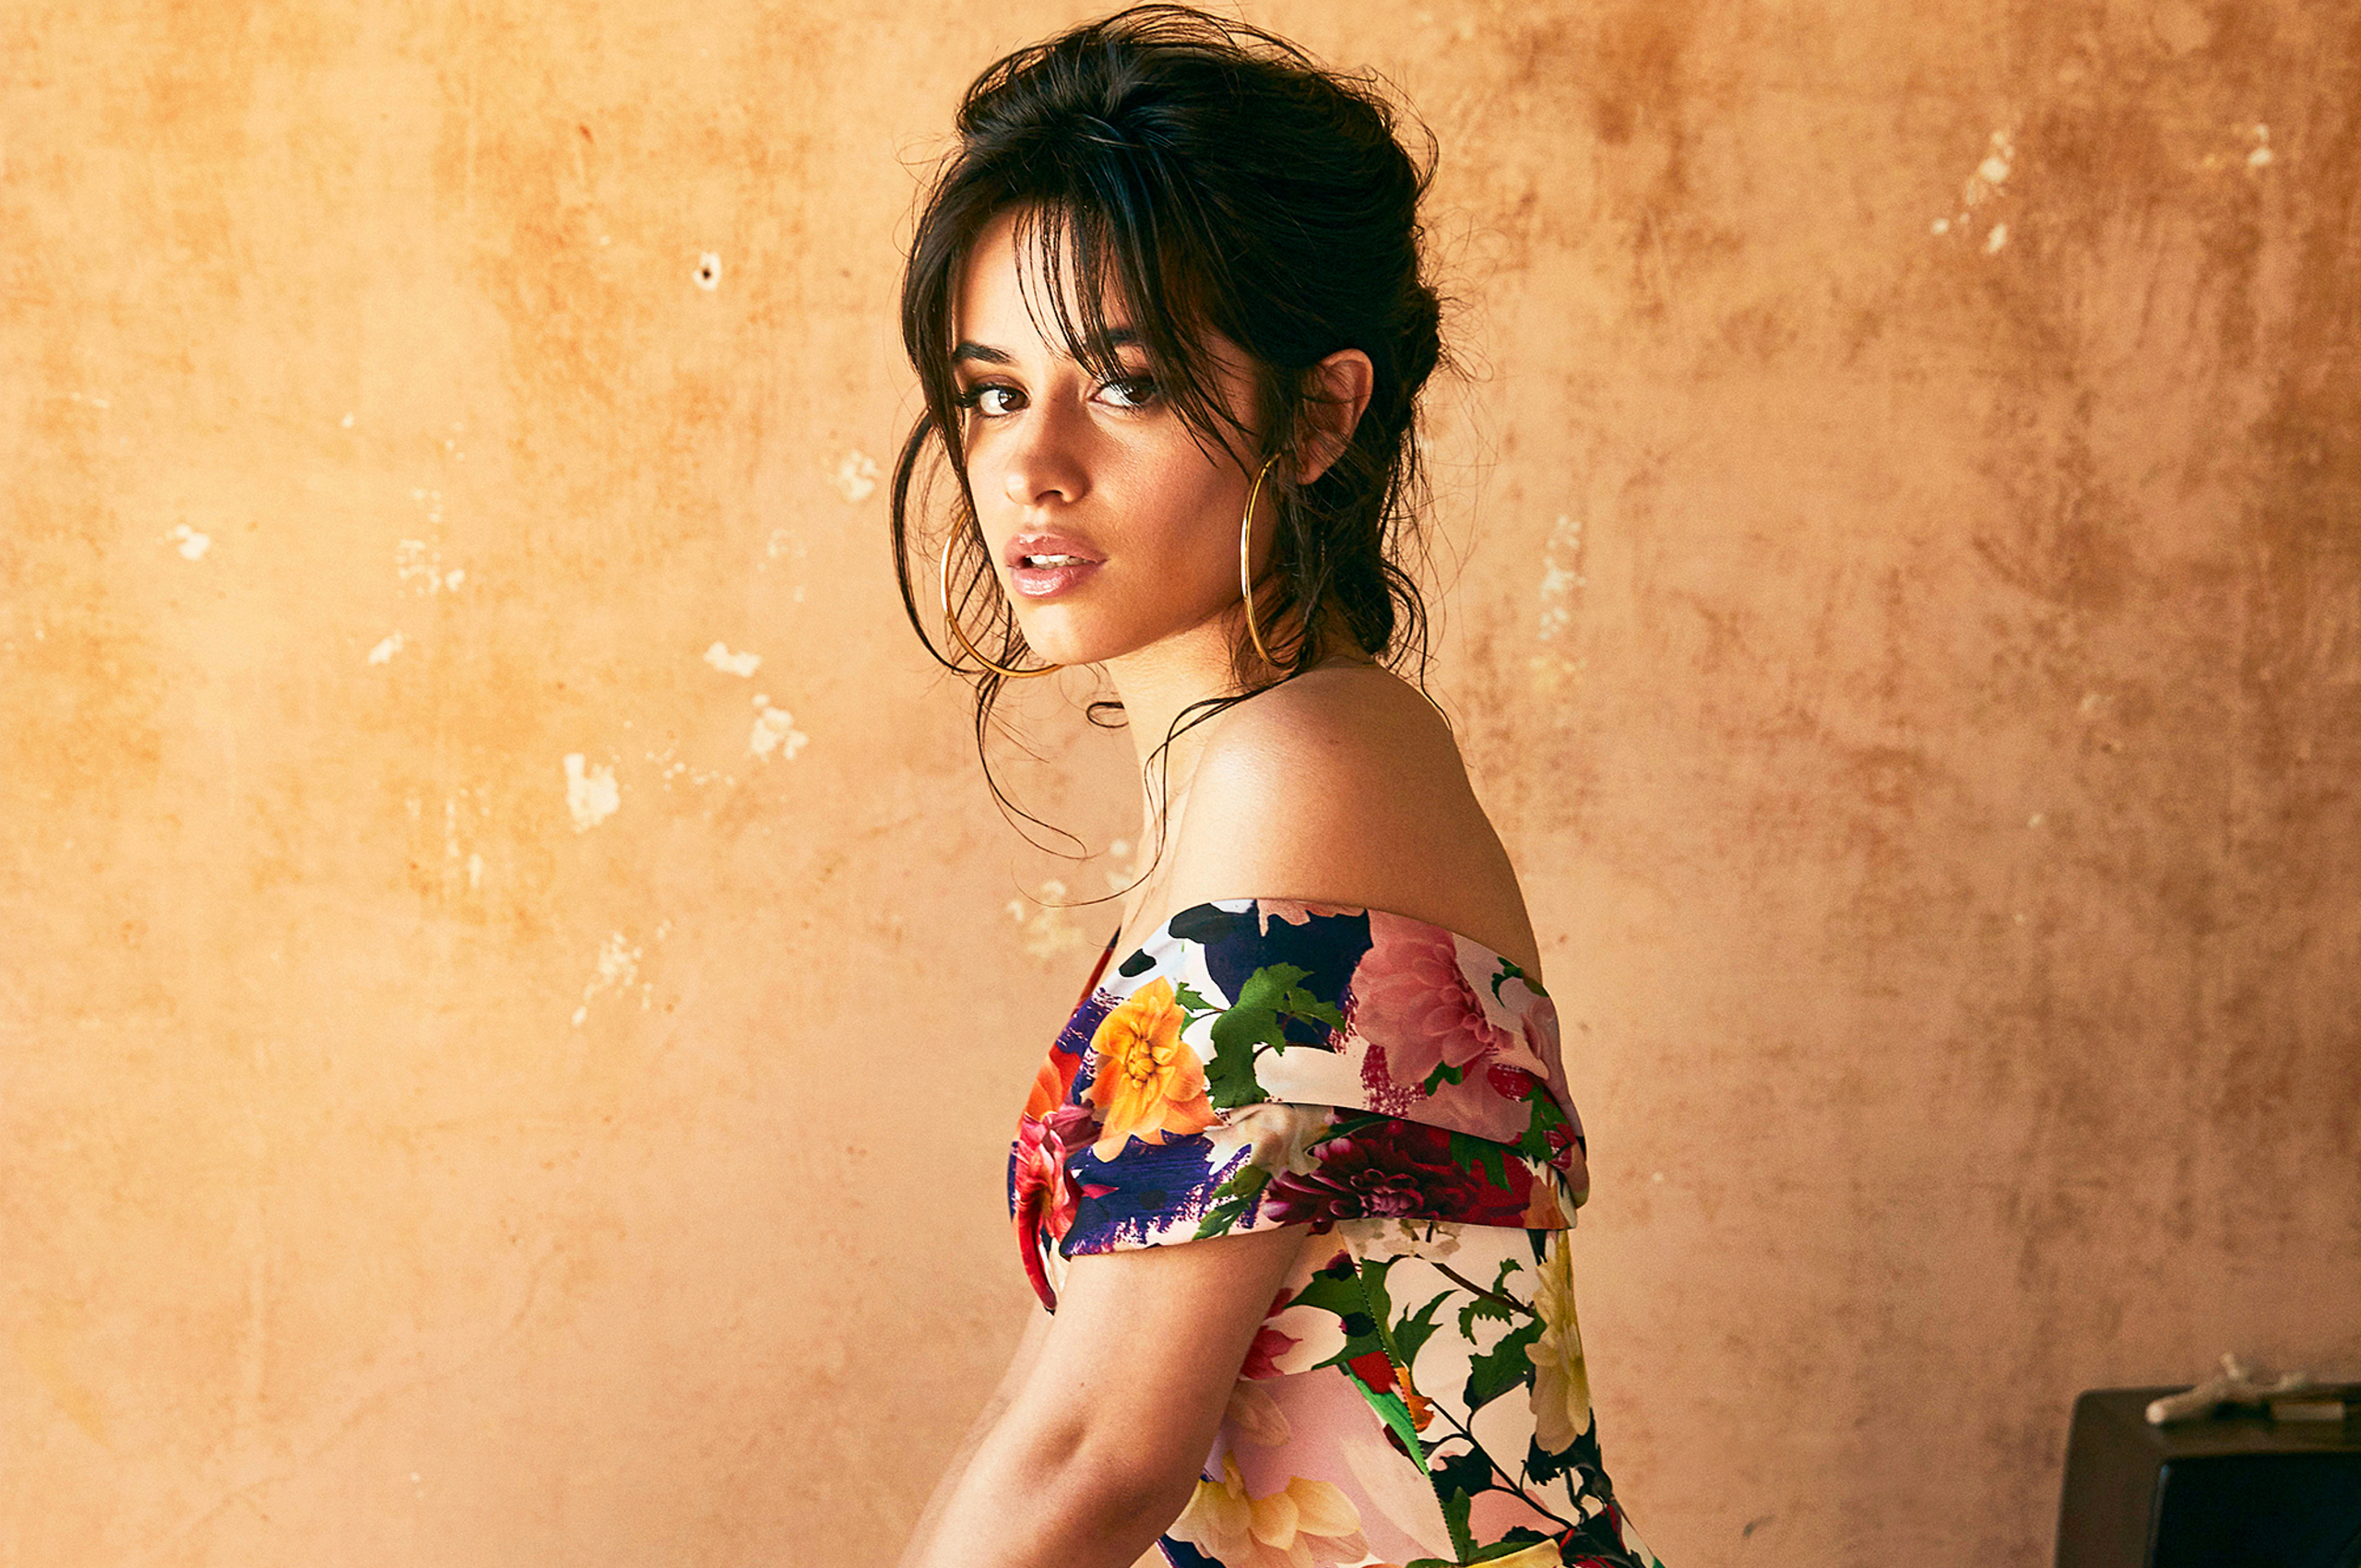 camila-cabello-the-edit-2018-m2.jpg